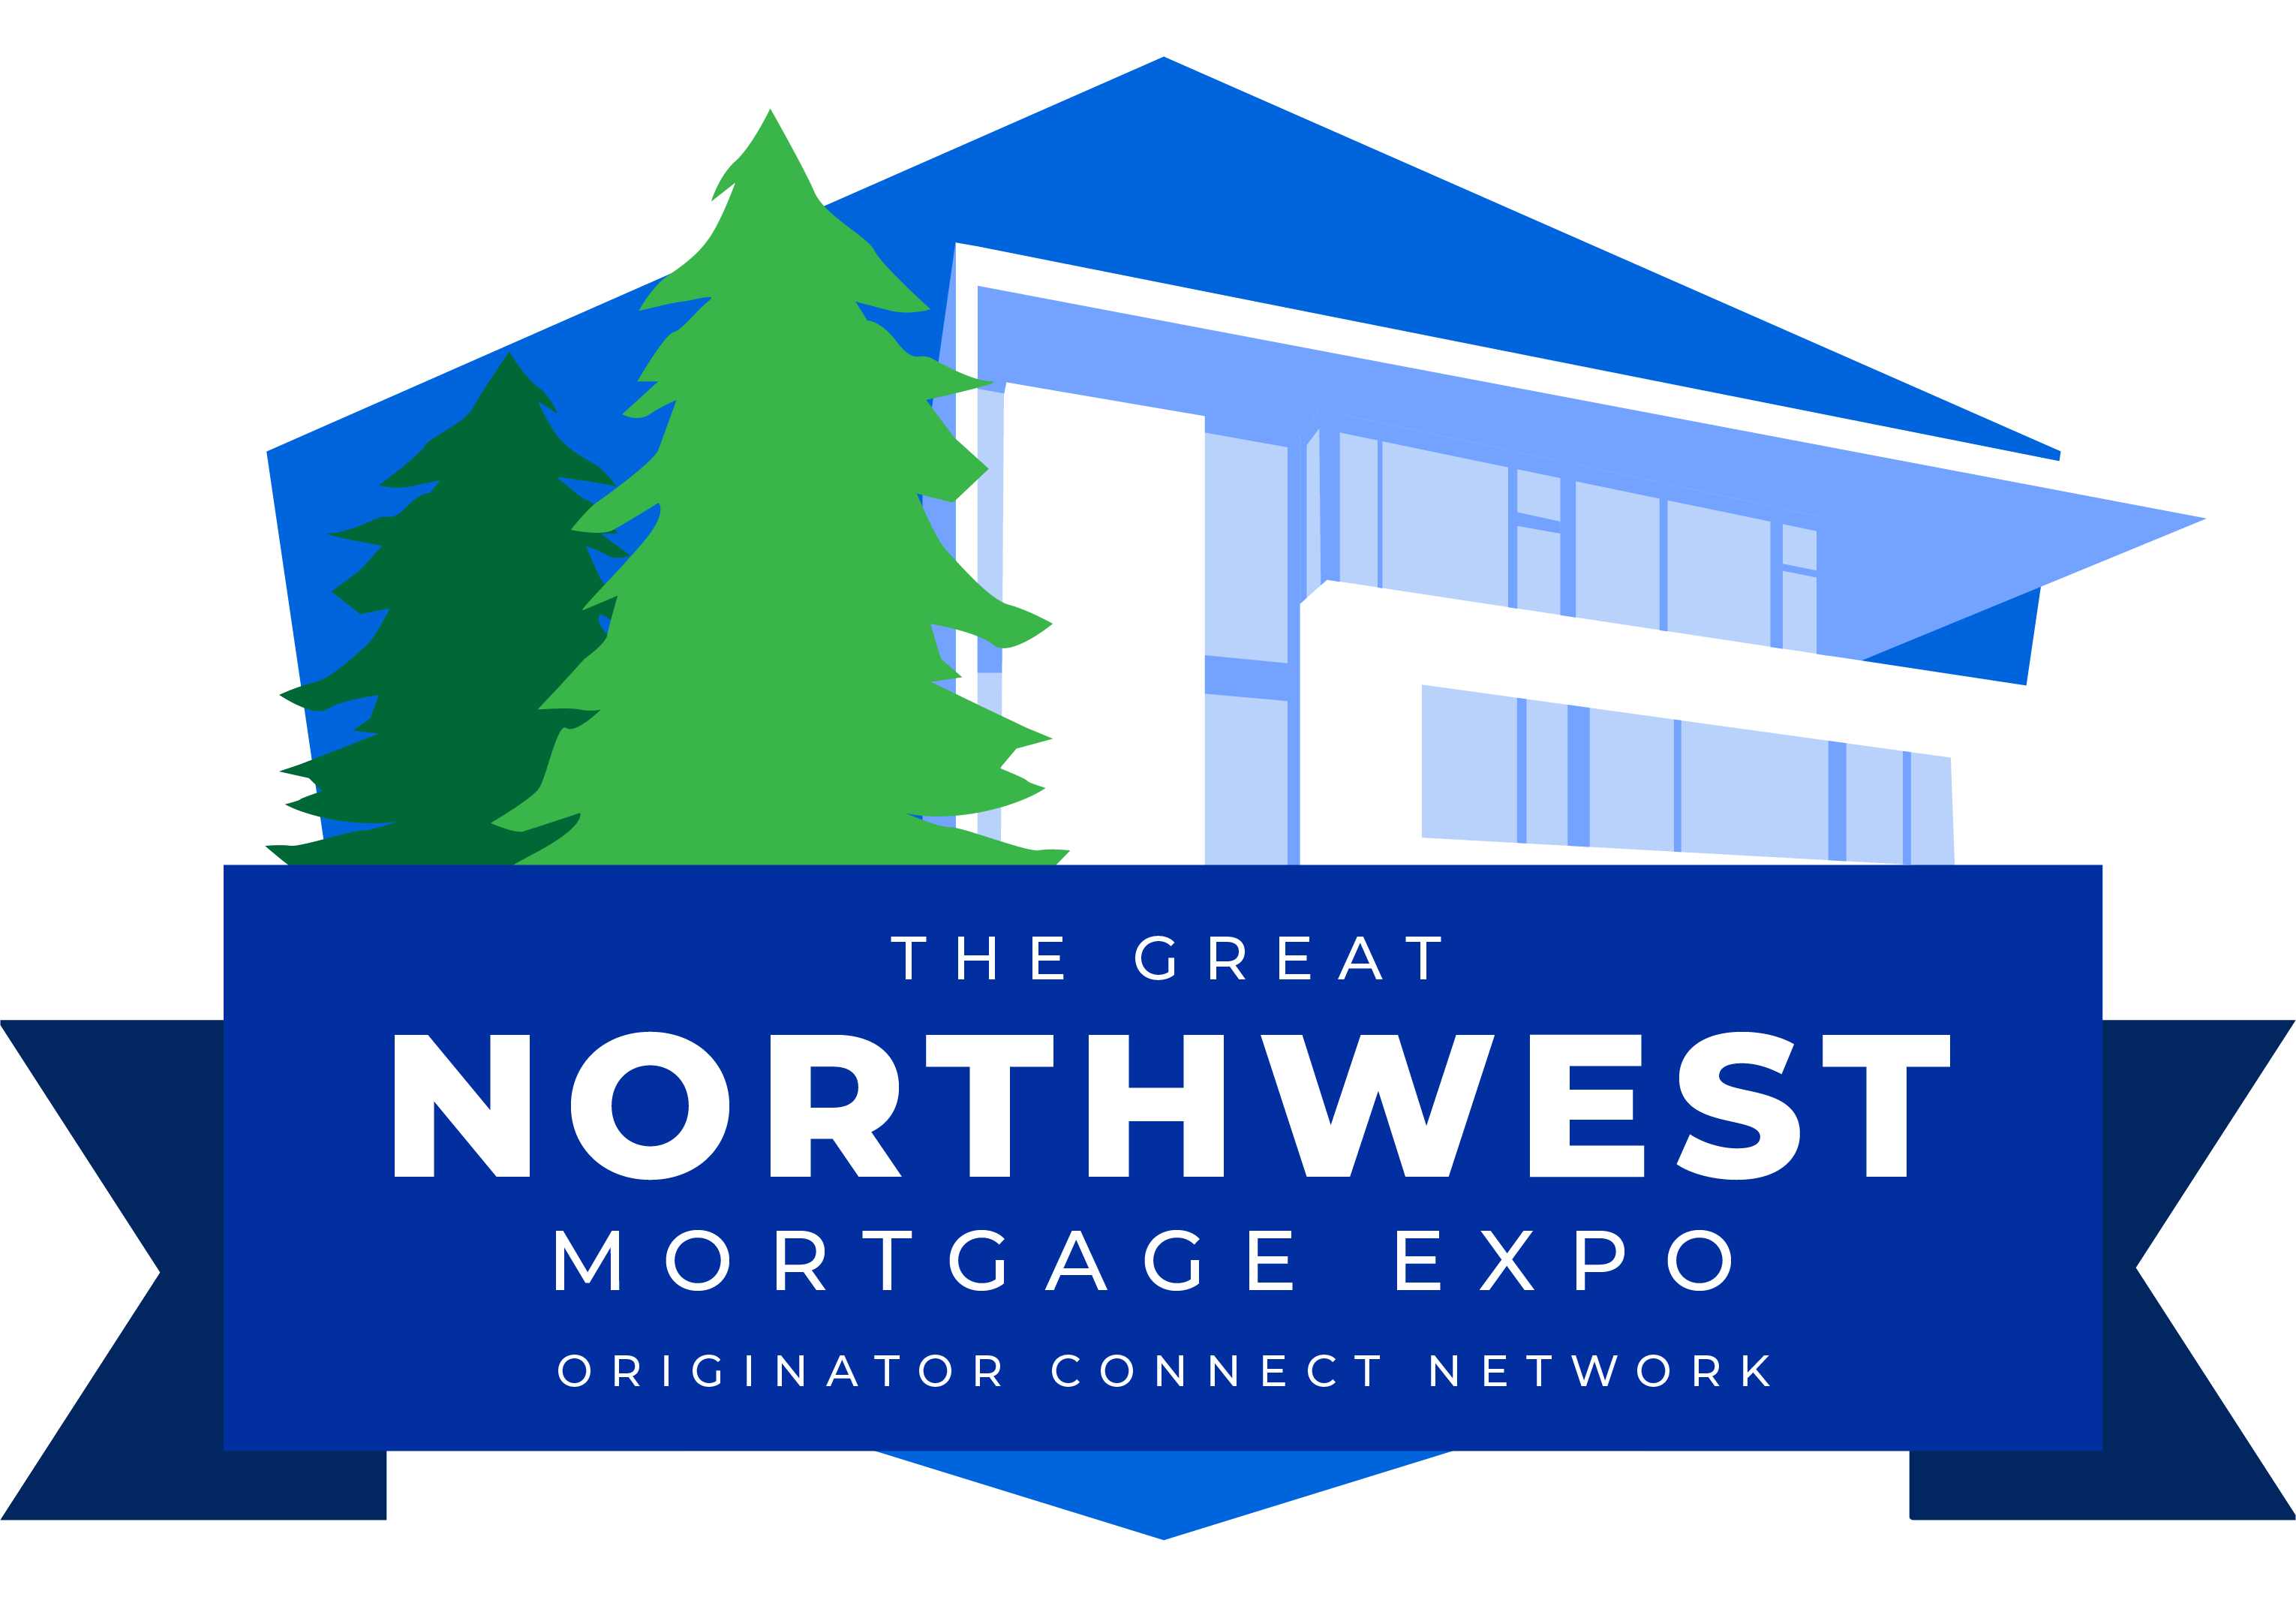 The Great Northwest Mortgage Expo — Seattle